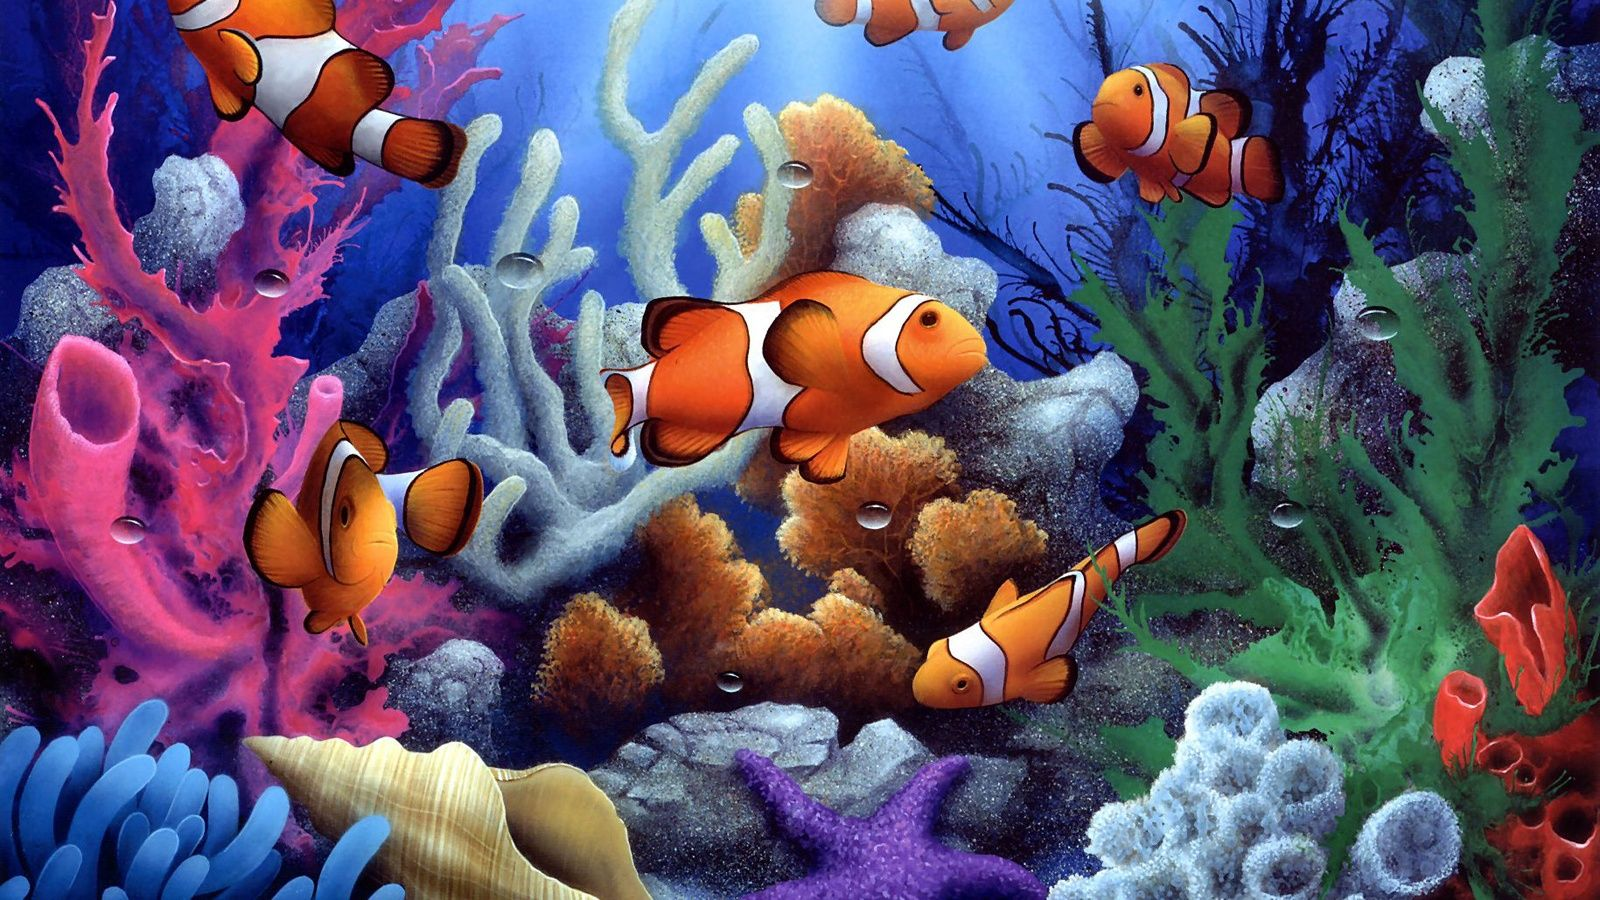 List of synonyms and antonyms of the word peces wallpapers - Peces tropicales fotos ...